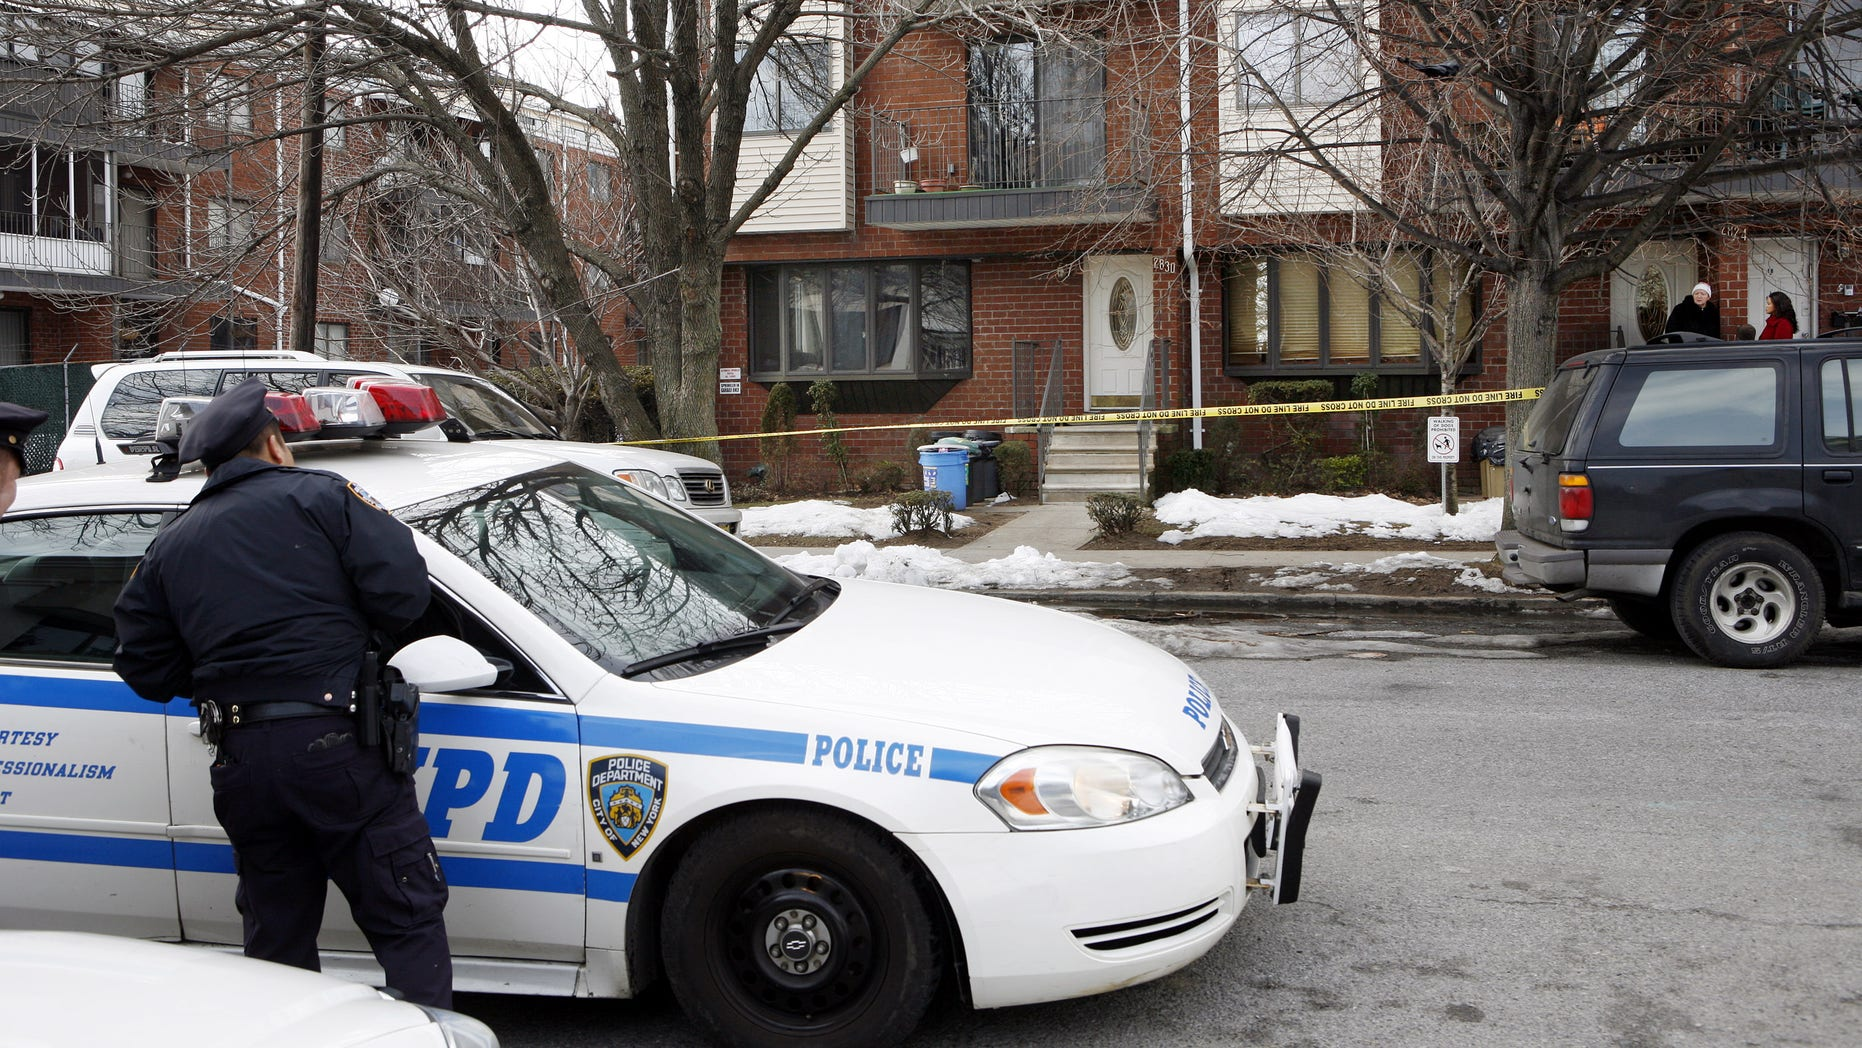 Feb. 12: Police stand outside the house in the Brooklyn borough of New York where Maksim Gelman lived and where police say he killed his stepfather on Friday morning.  The 23-year-old Brooklyn man was in custody Saturday after a 28-hour stabbing rampage that took the lives of his stepfather, his ex-girlfriend and her mother, and led to a nightlong manhunt across New York City, police said. Authorities said Gelman also hijacked a car, stabbing and wounding the driver and fatally hitting a pedestrian. (AP)